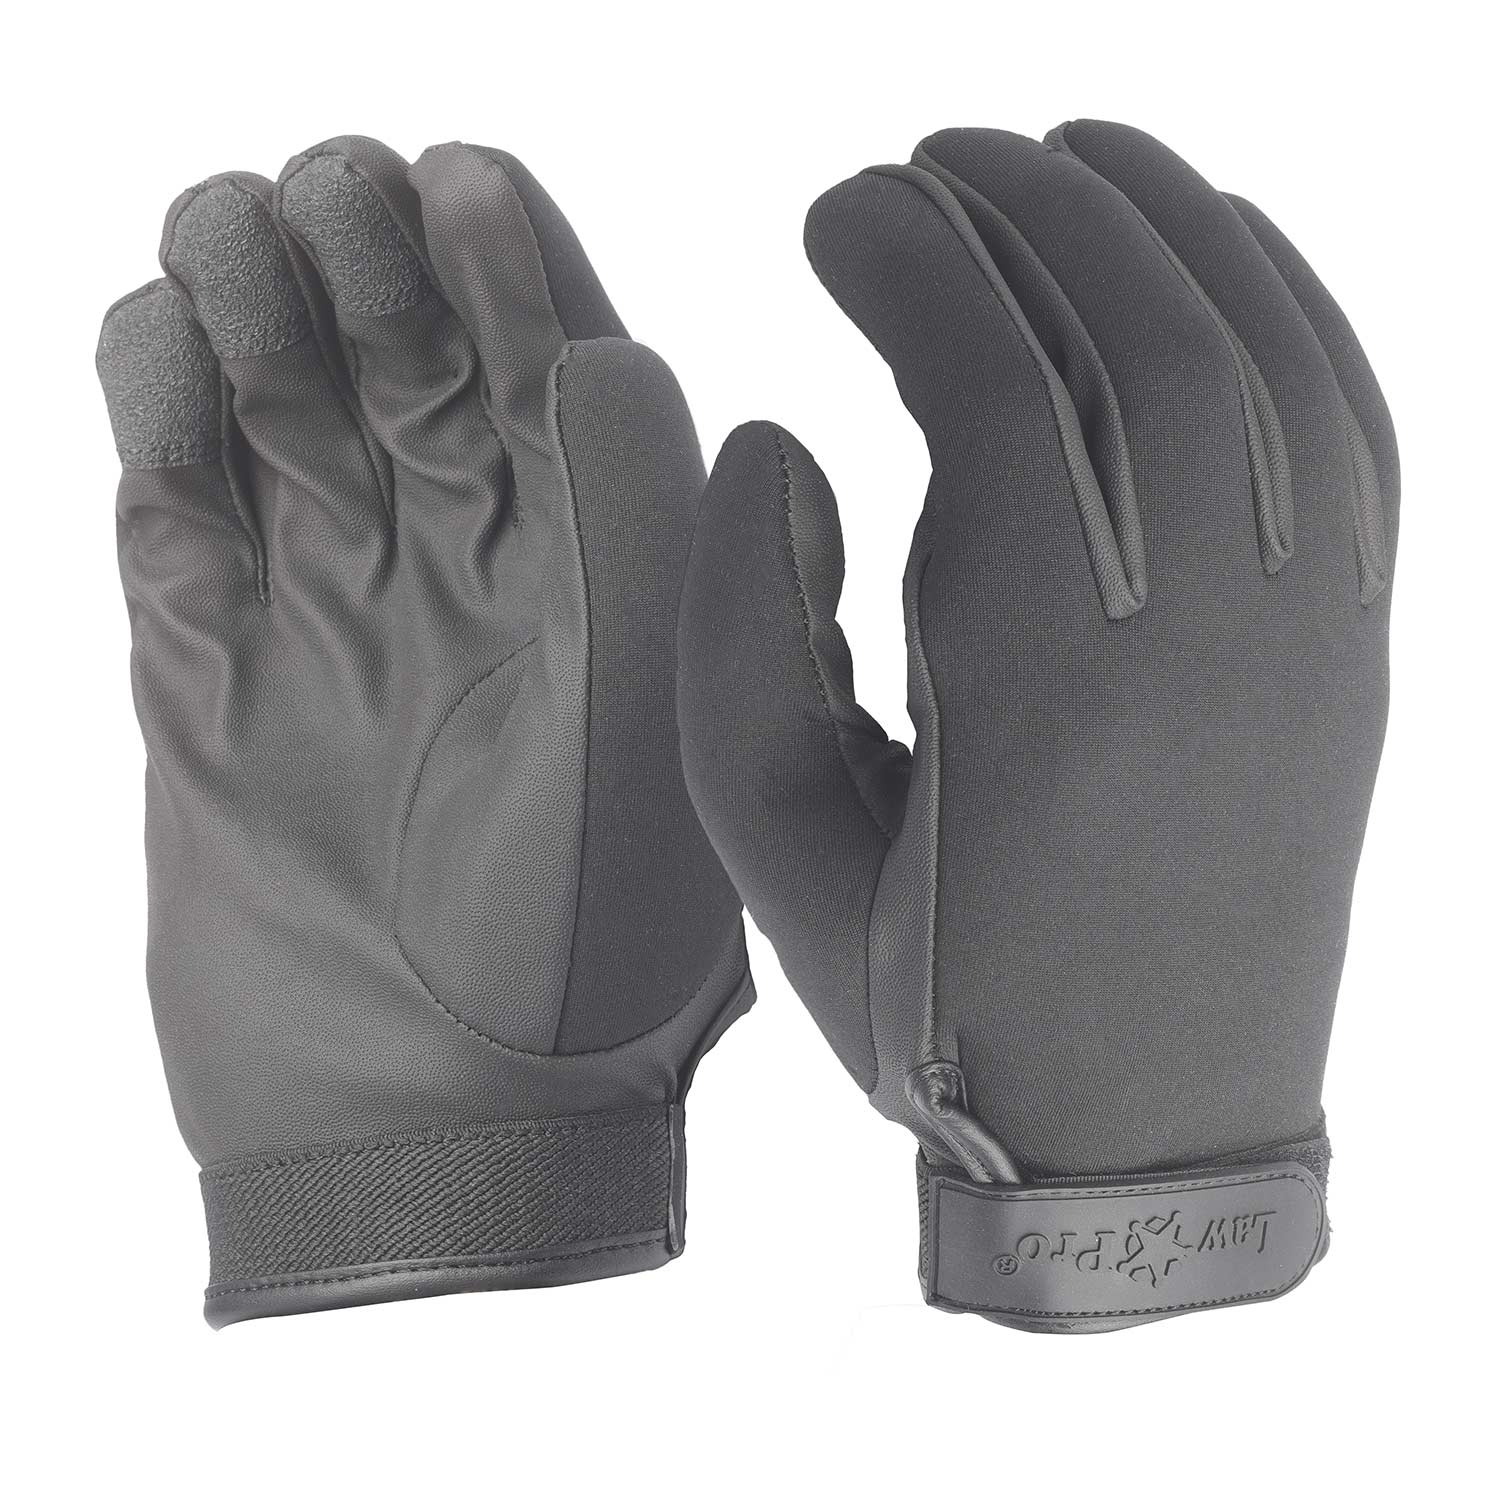 LawPro Waterproof Insulated Duty Glove